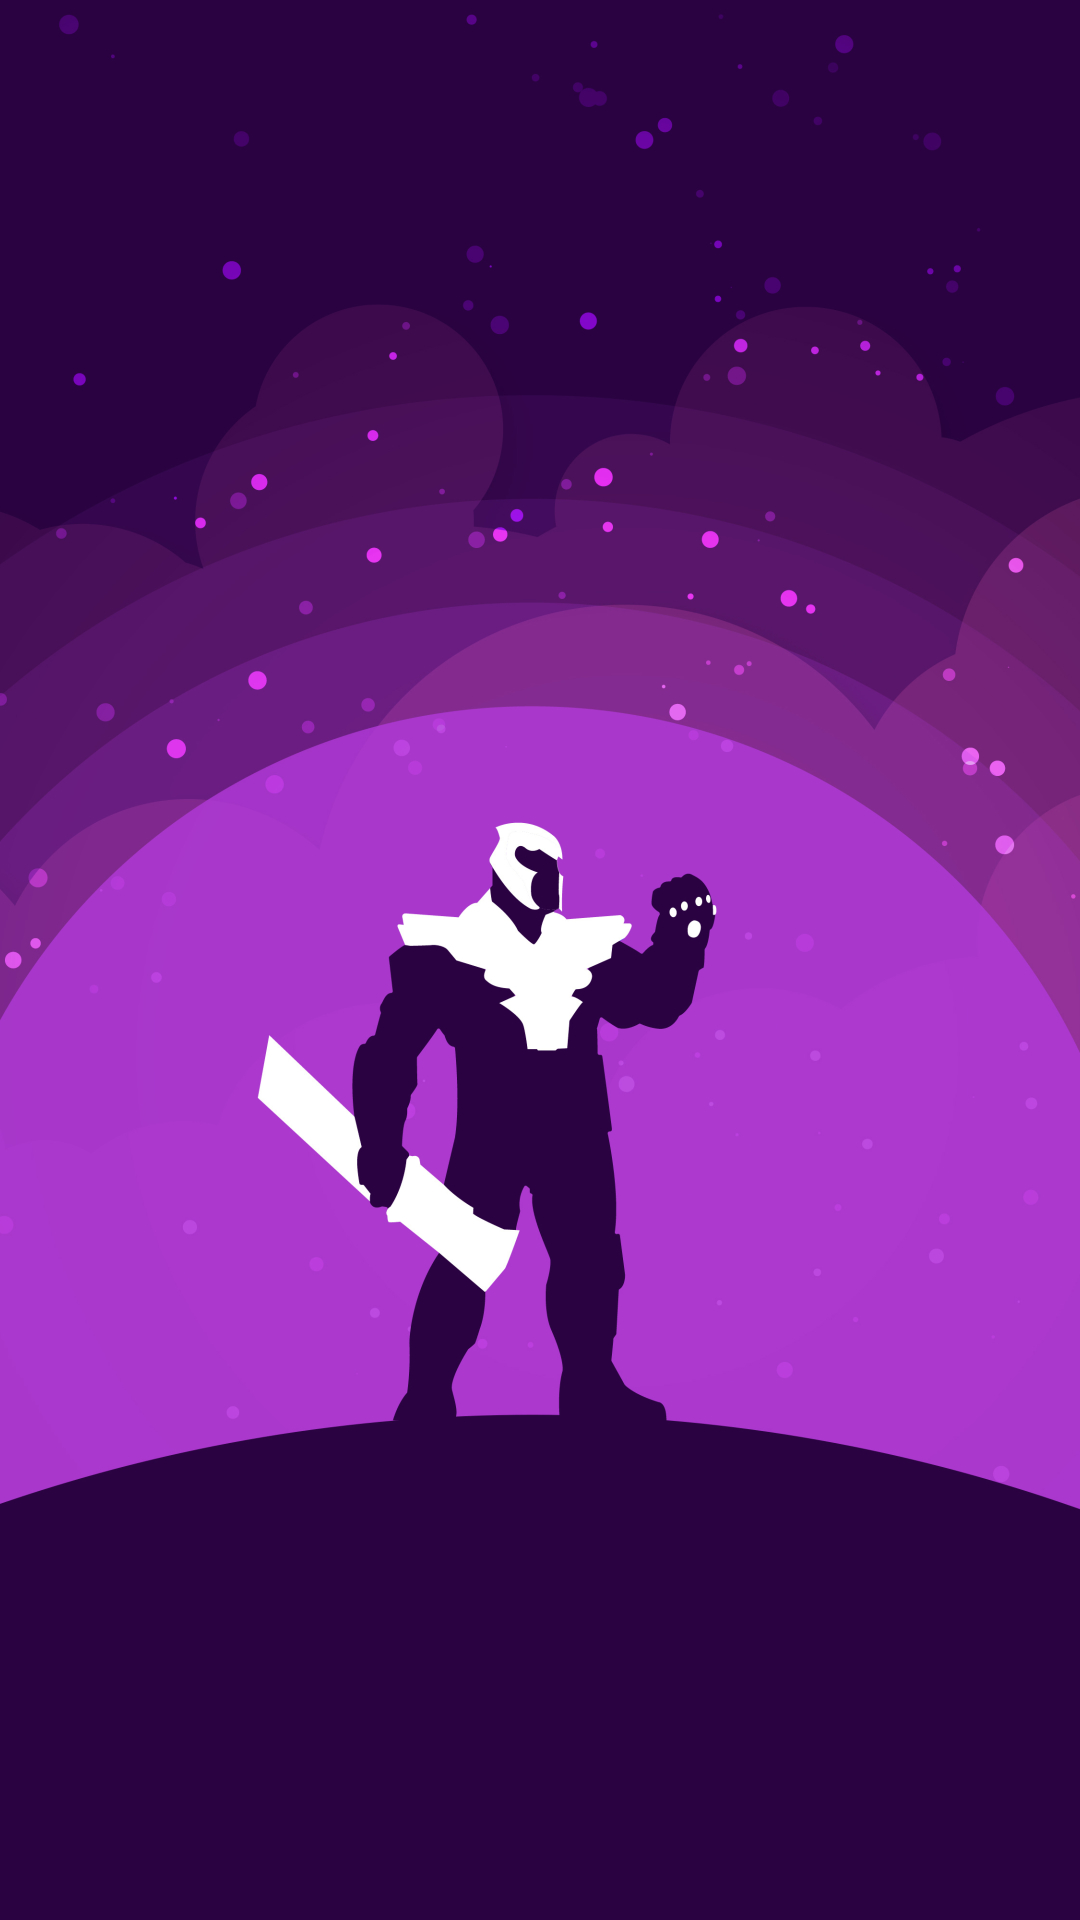 1080x1920 Thanos Endgame Minimalist Iphone 7, 6s, 6 Plus ...